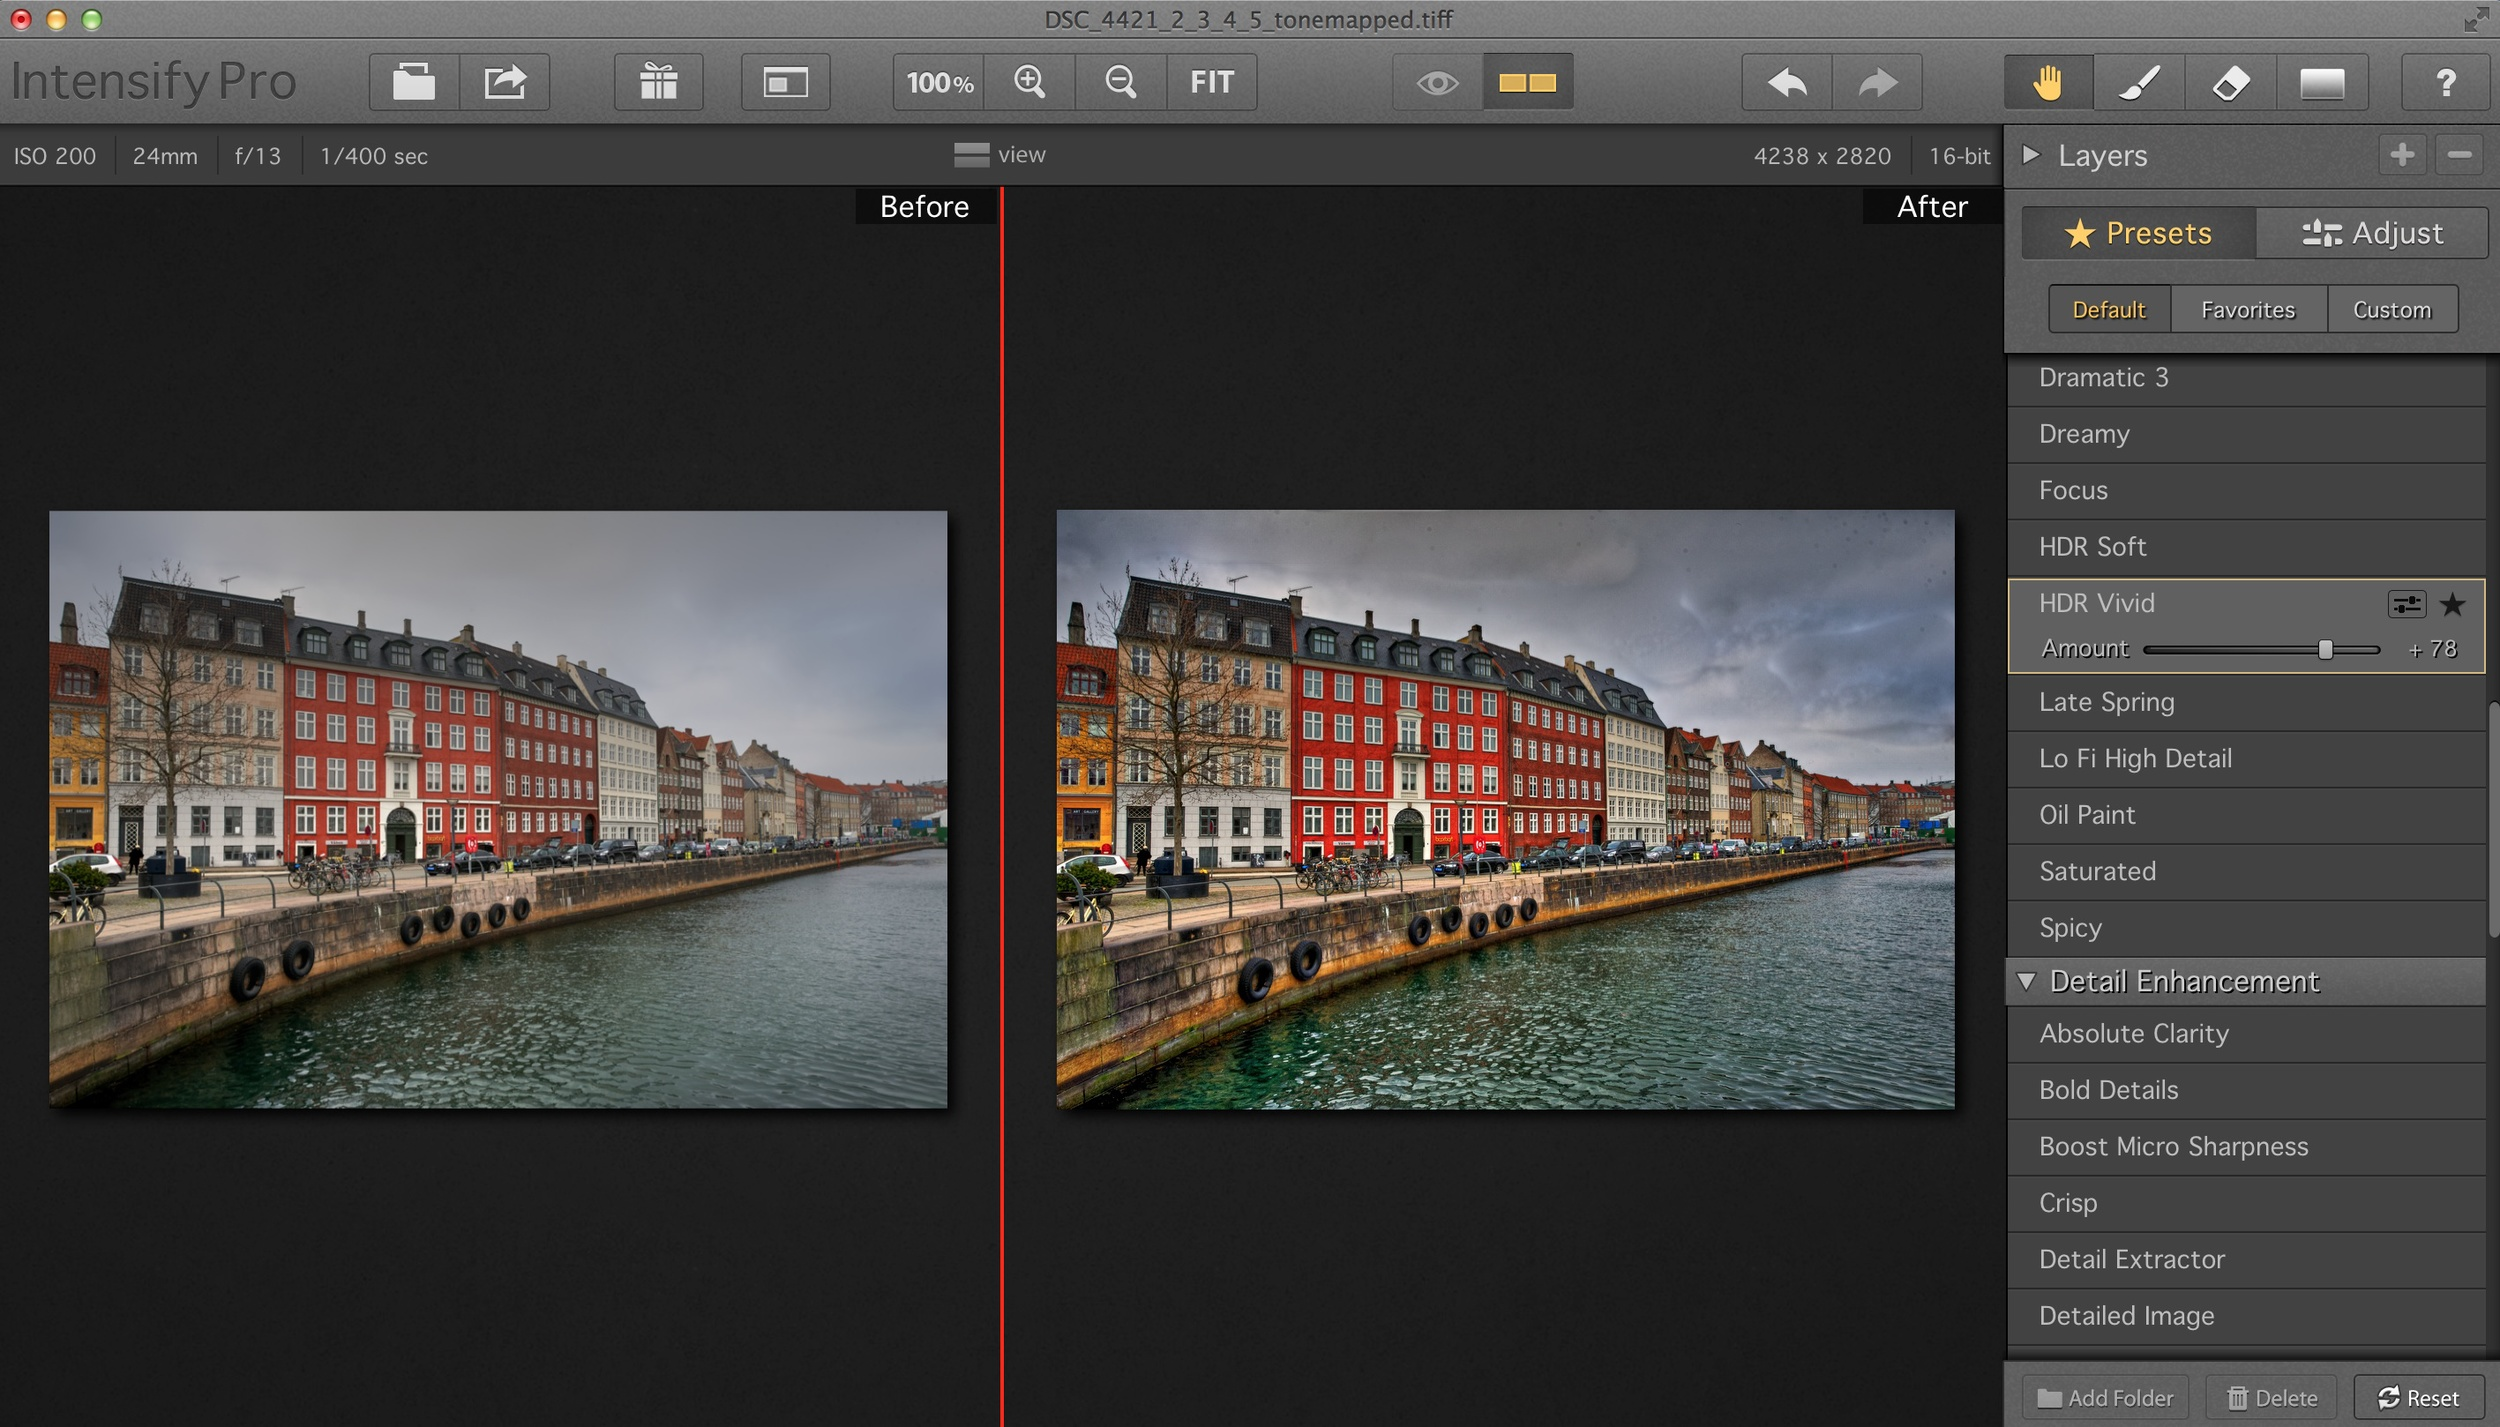 Here's a side by side comparison of the original (left) and the HDR Vivid preset (right).